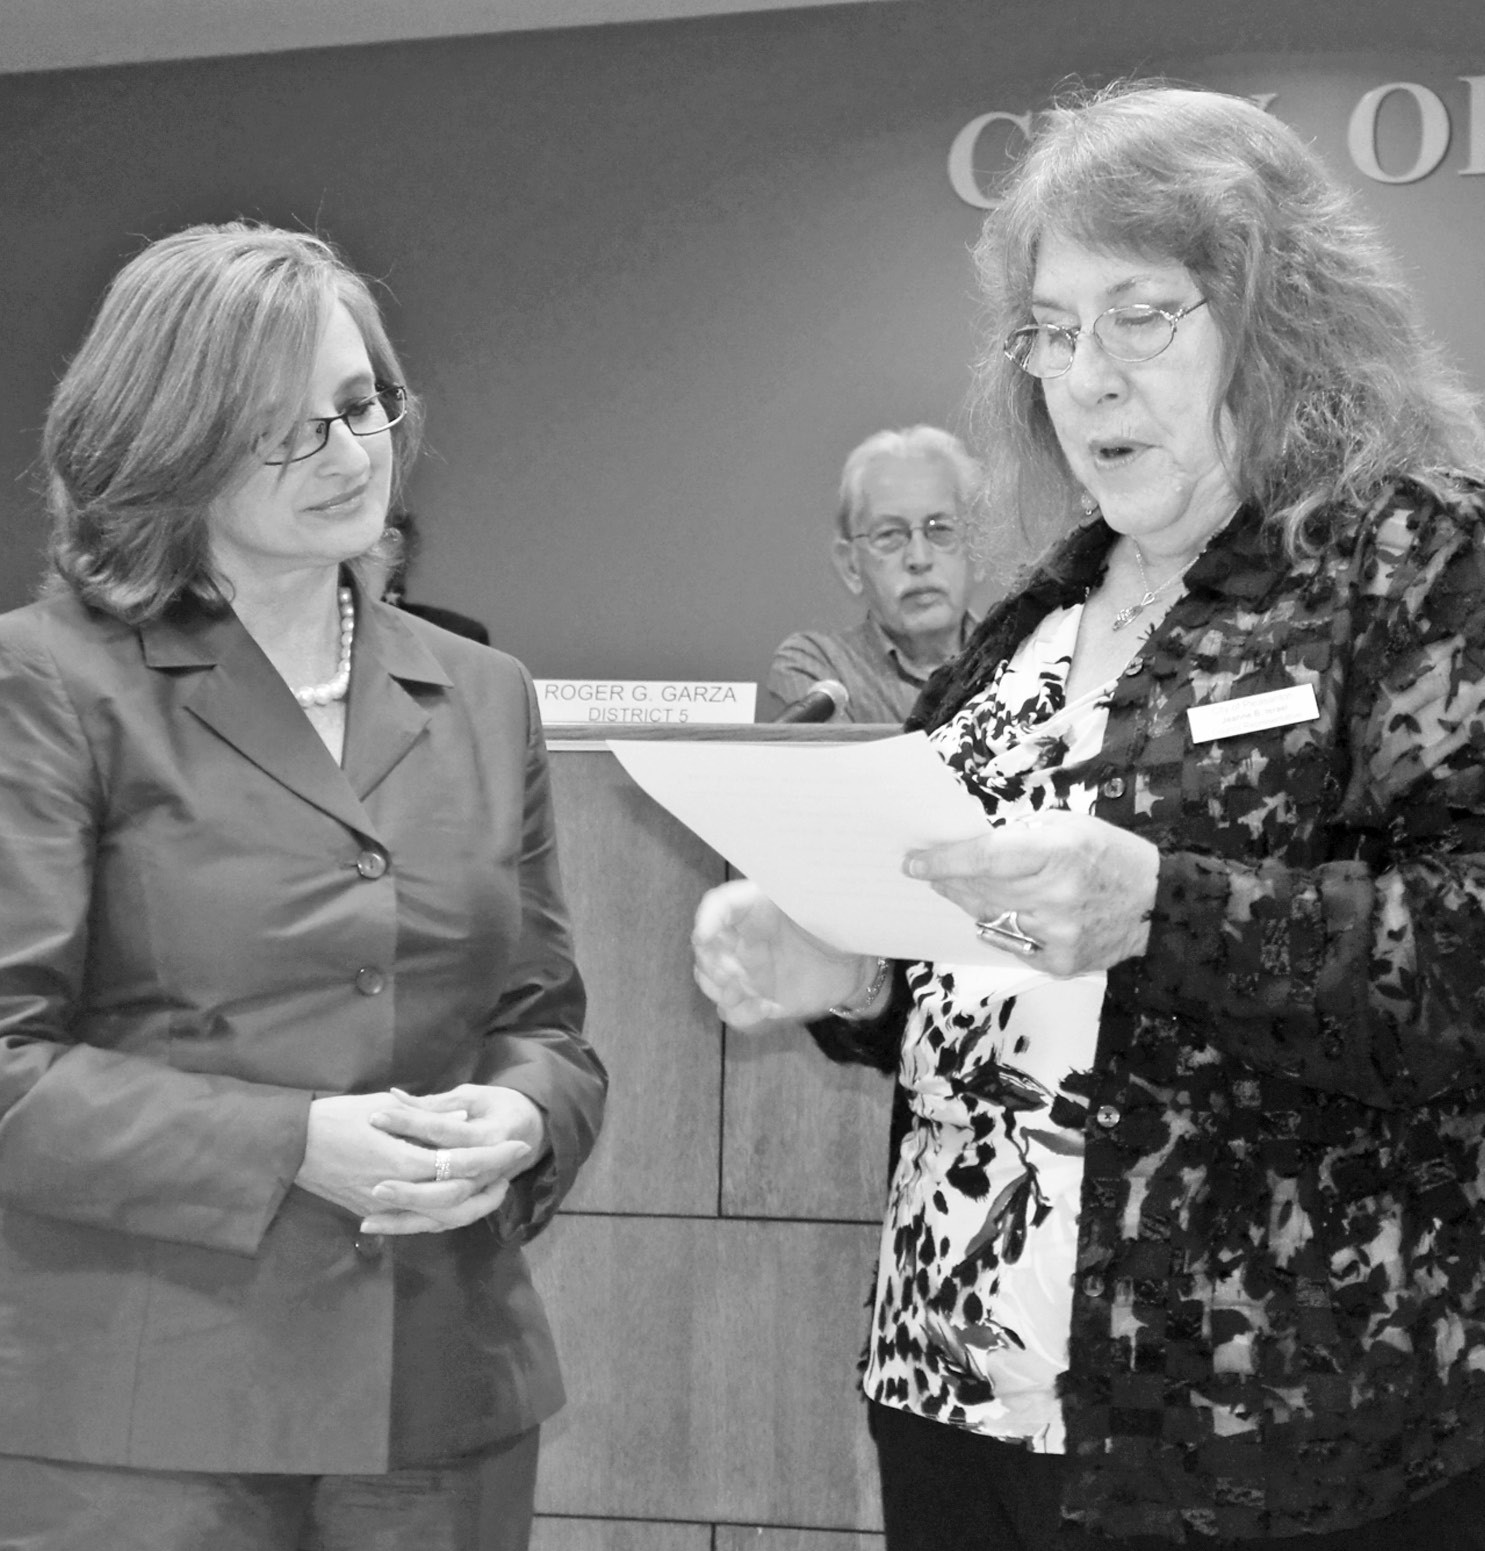 Pleasanton City Councilwoman Jeanne B. Israel (at right) presents a certificate of appreciation to Janet Jackson, for serving on the City of Pleasanton Economic Development Corporation Board of Directors.